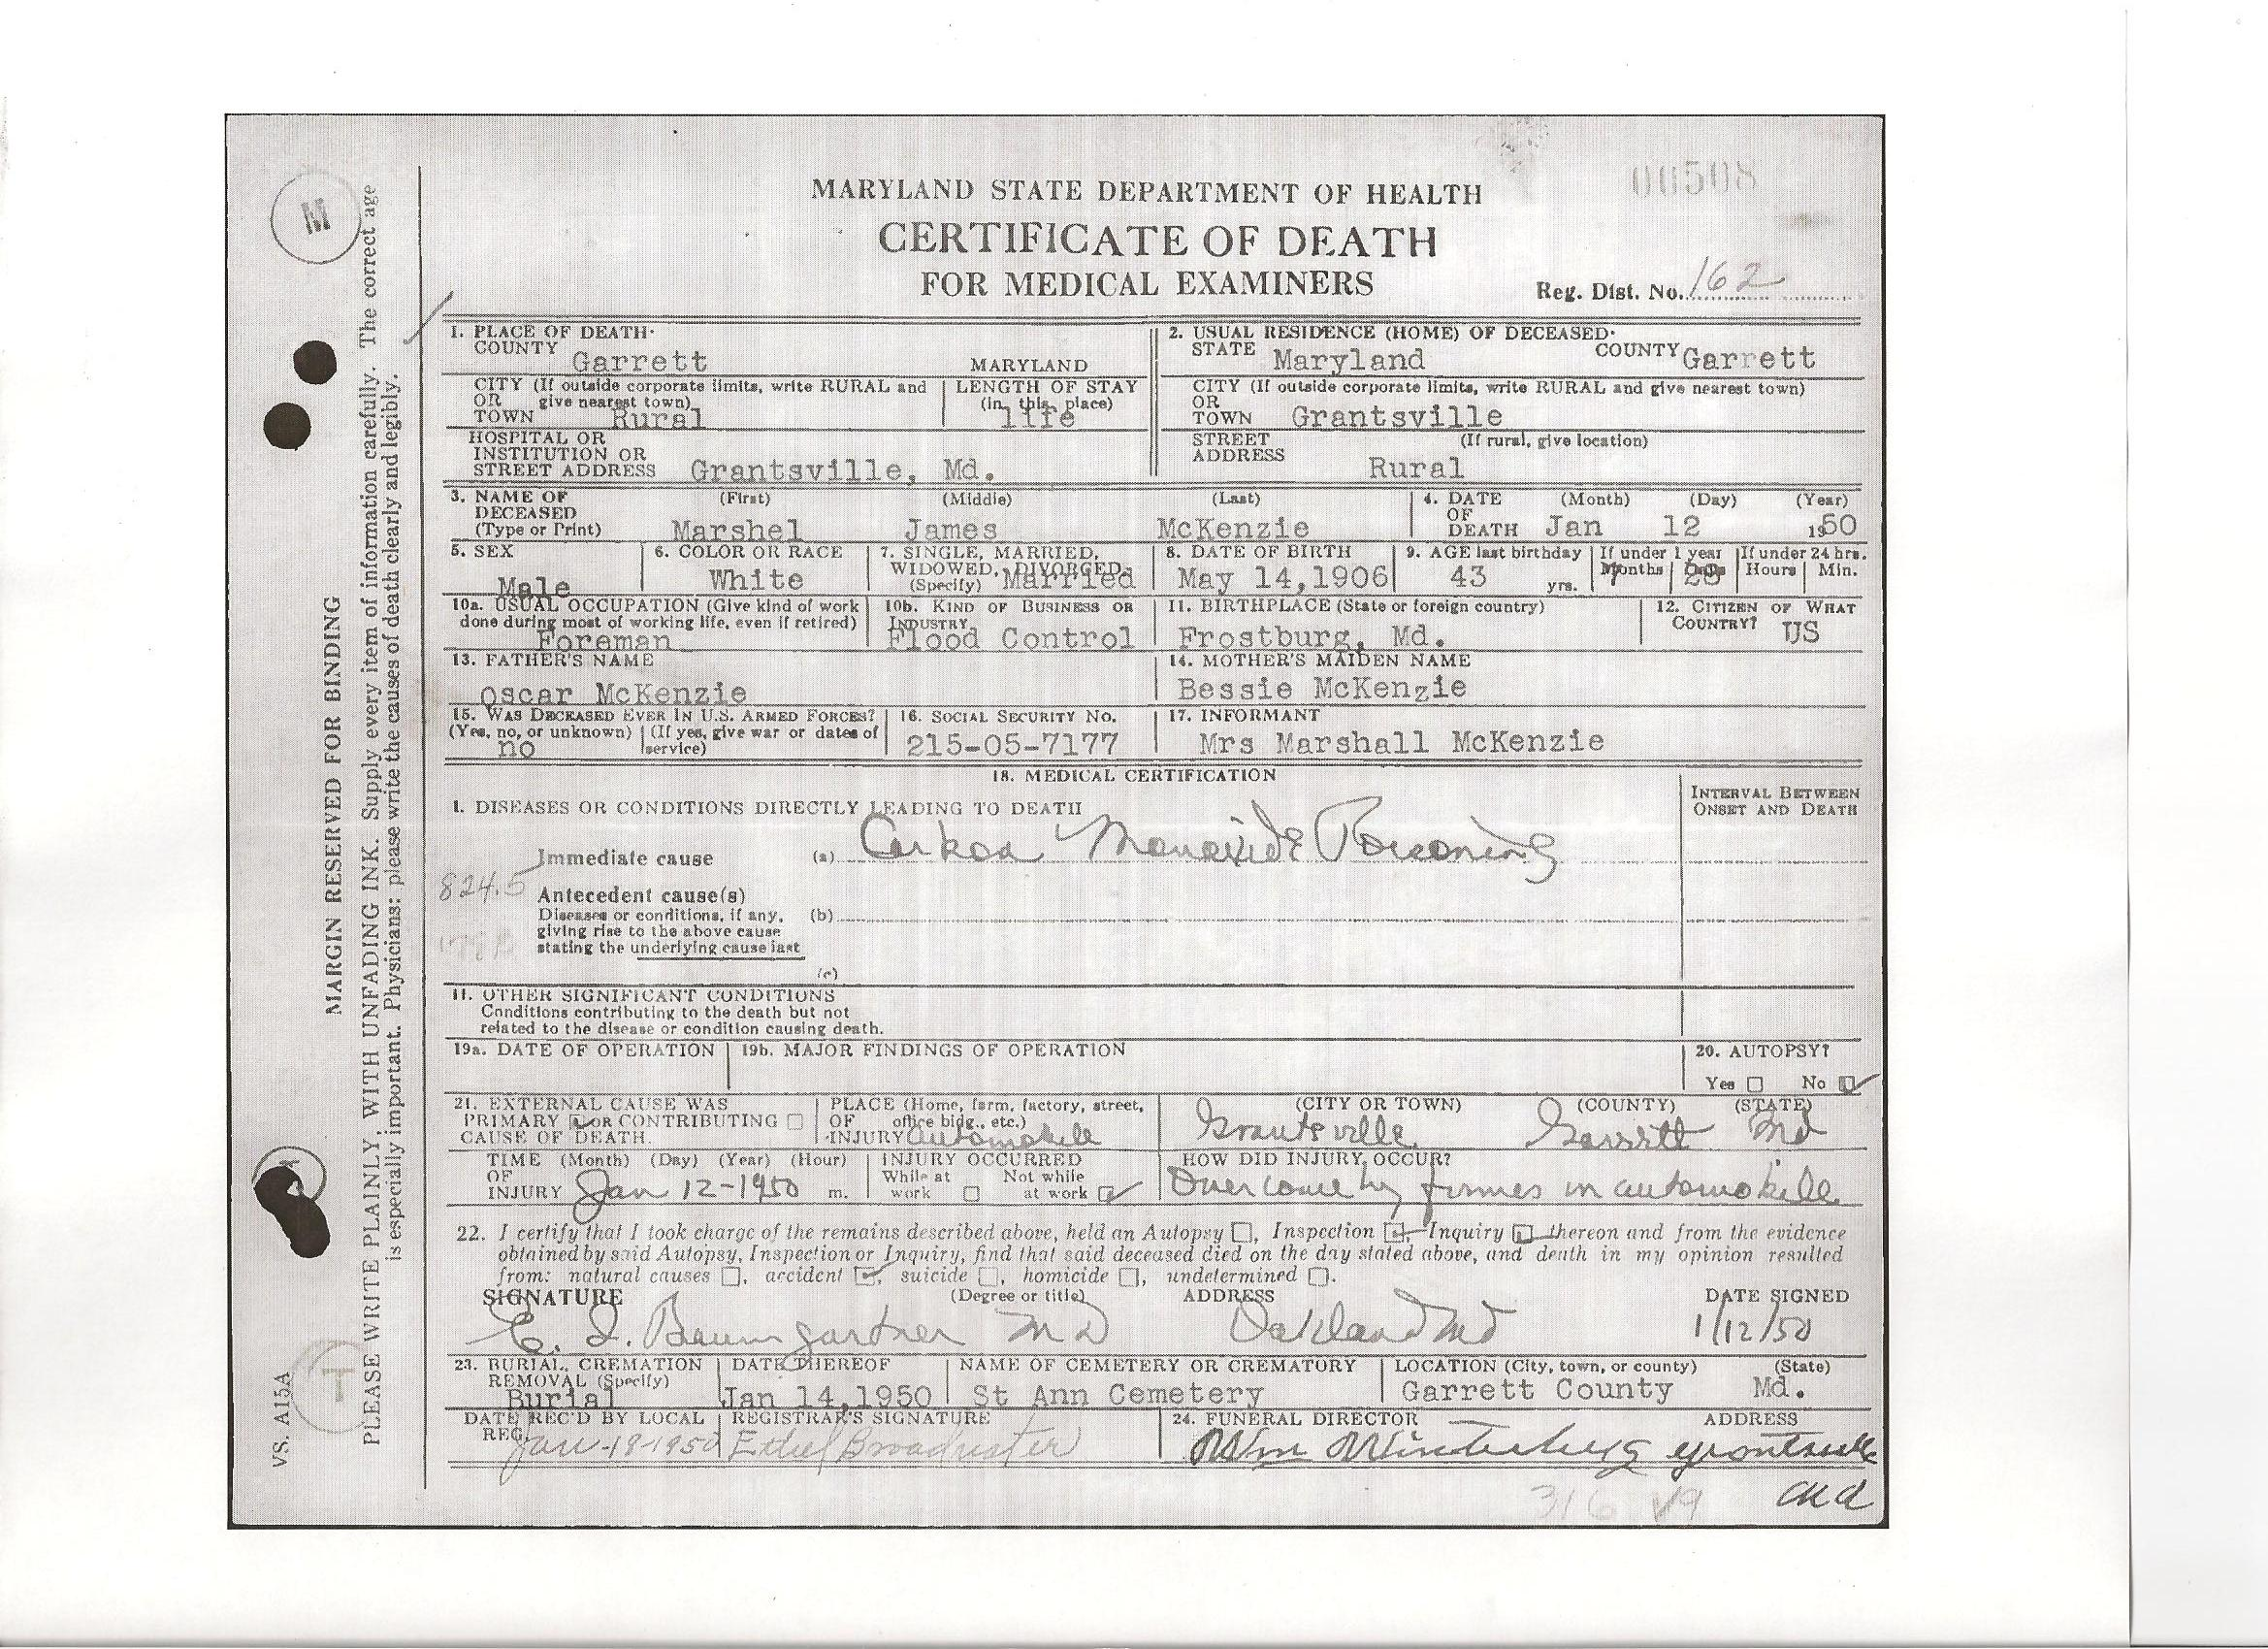 Documents Death Certificate Of Marshall James Mckenzie B 1906